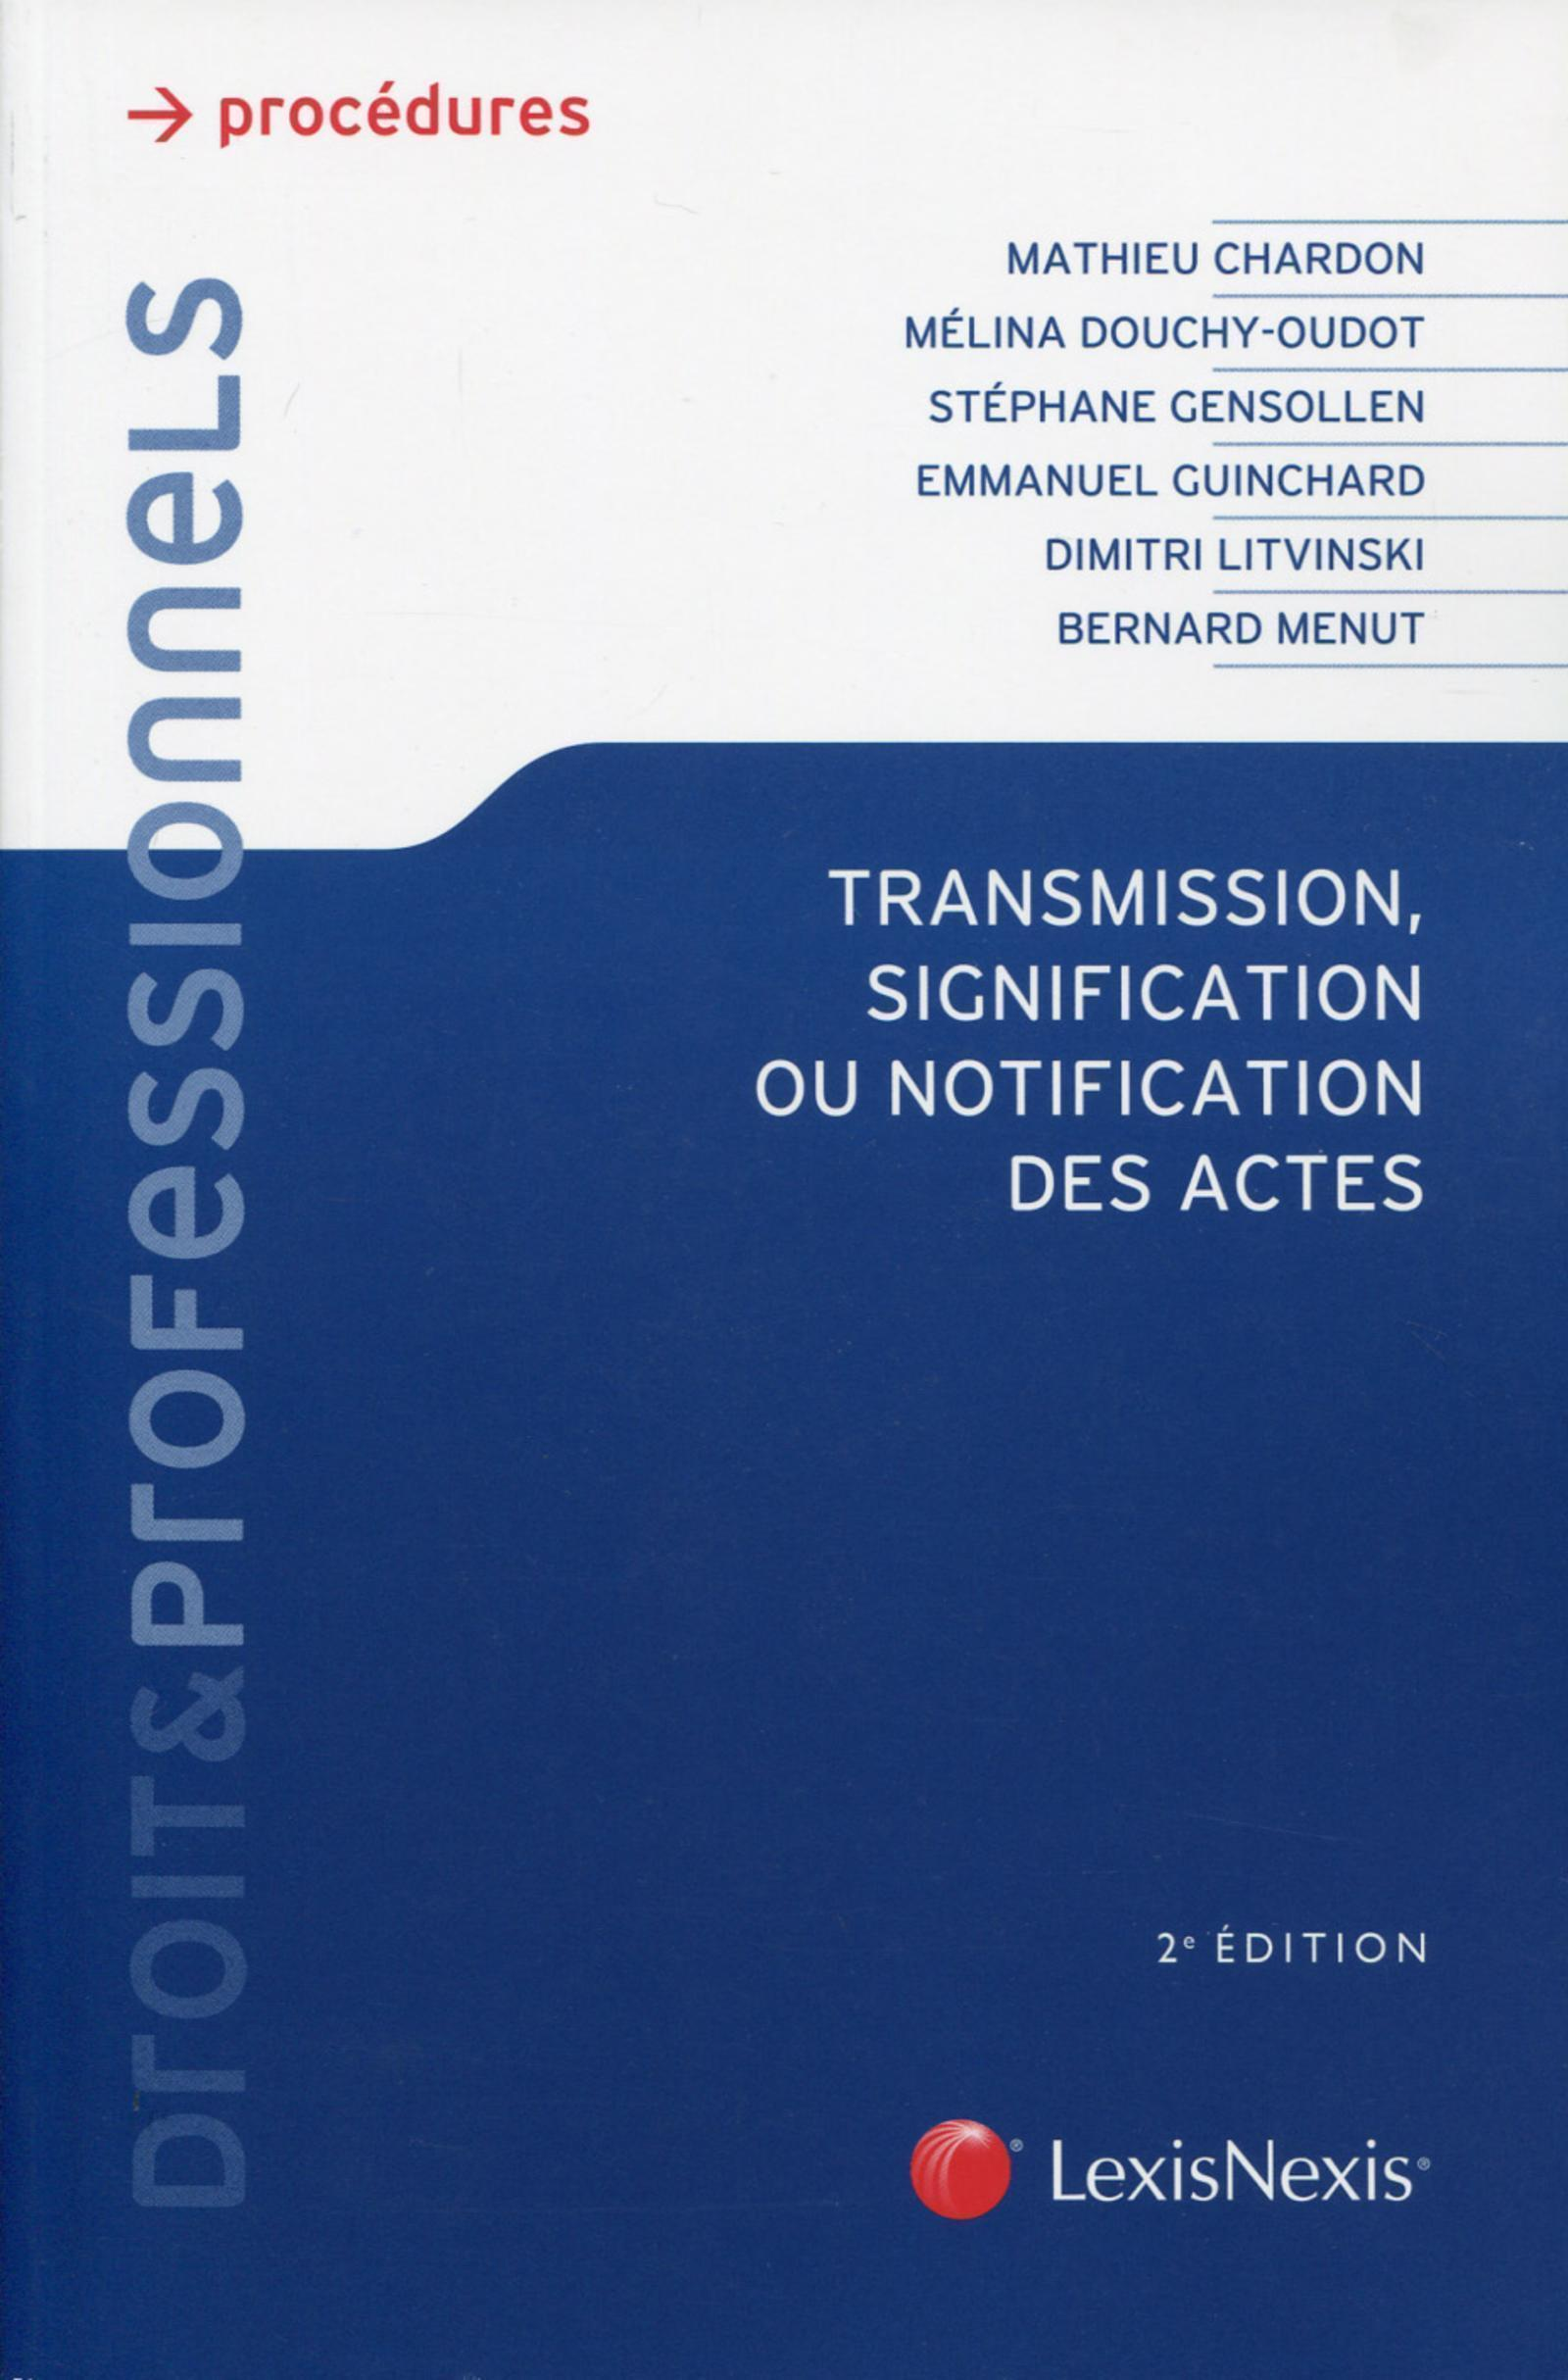 TRANSMISSION, SIGNIFICATION OU NOTIFICATION DES ACTES